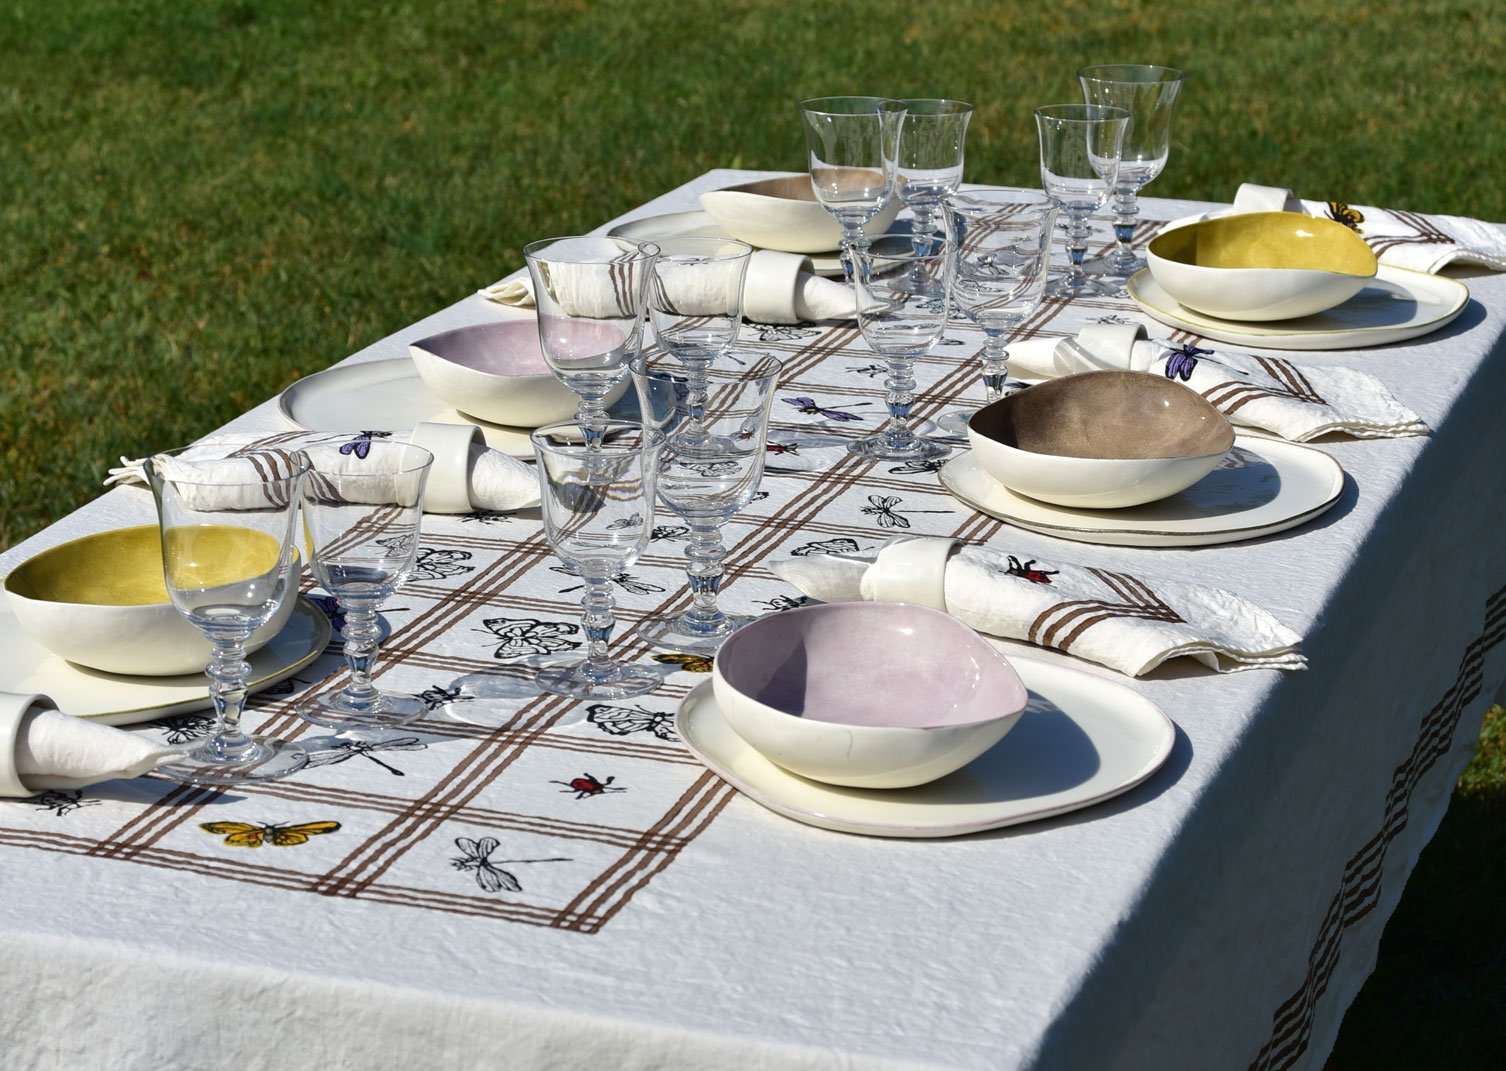 Insect table linen with